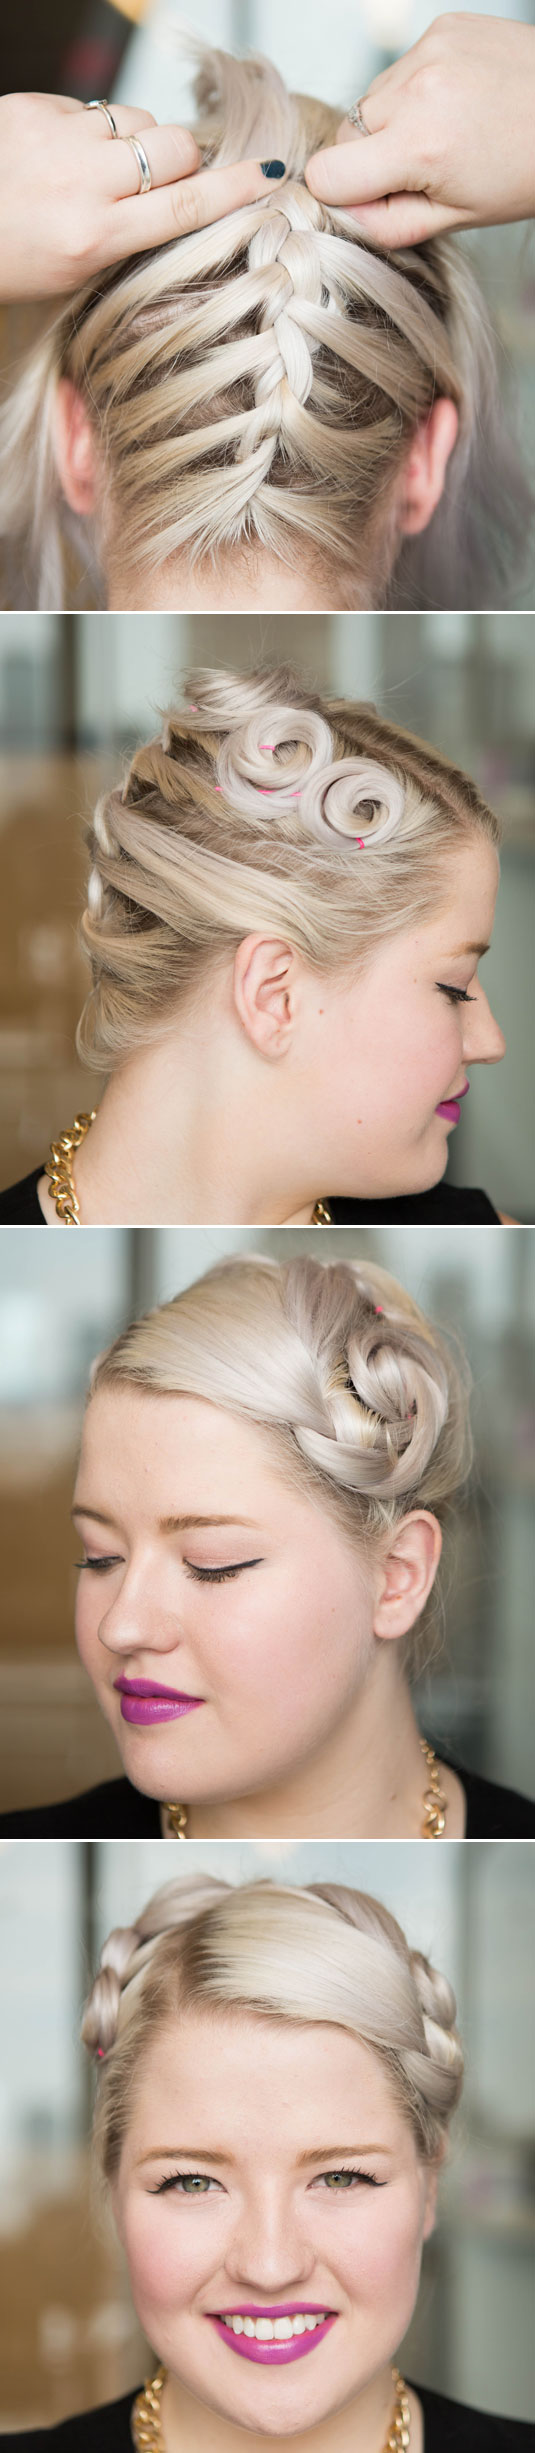 Braid your hair from back to front, since any layered shorter pieces in the front might be hard to weave into a plait.